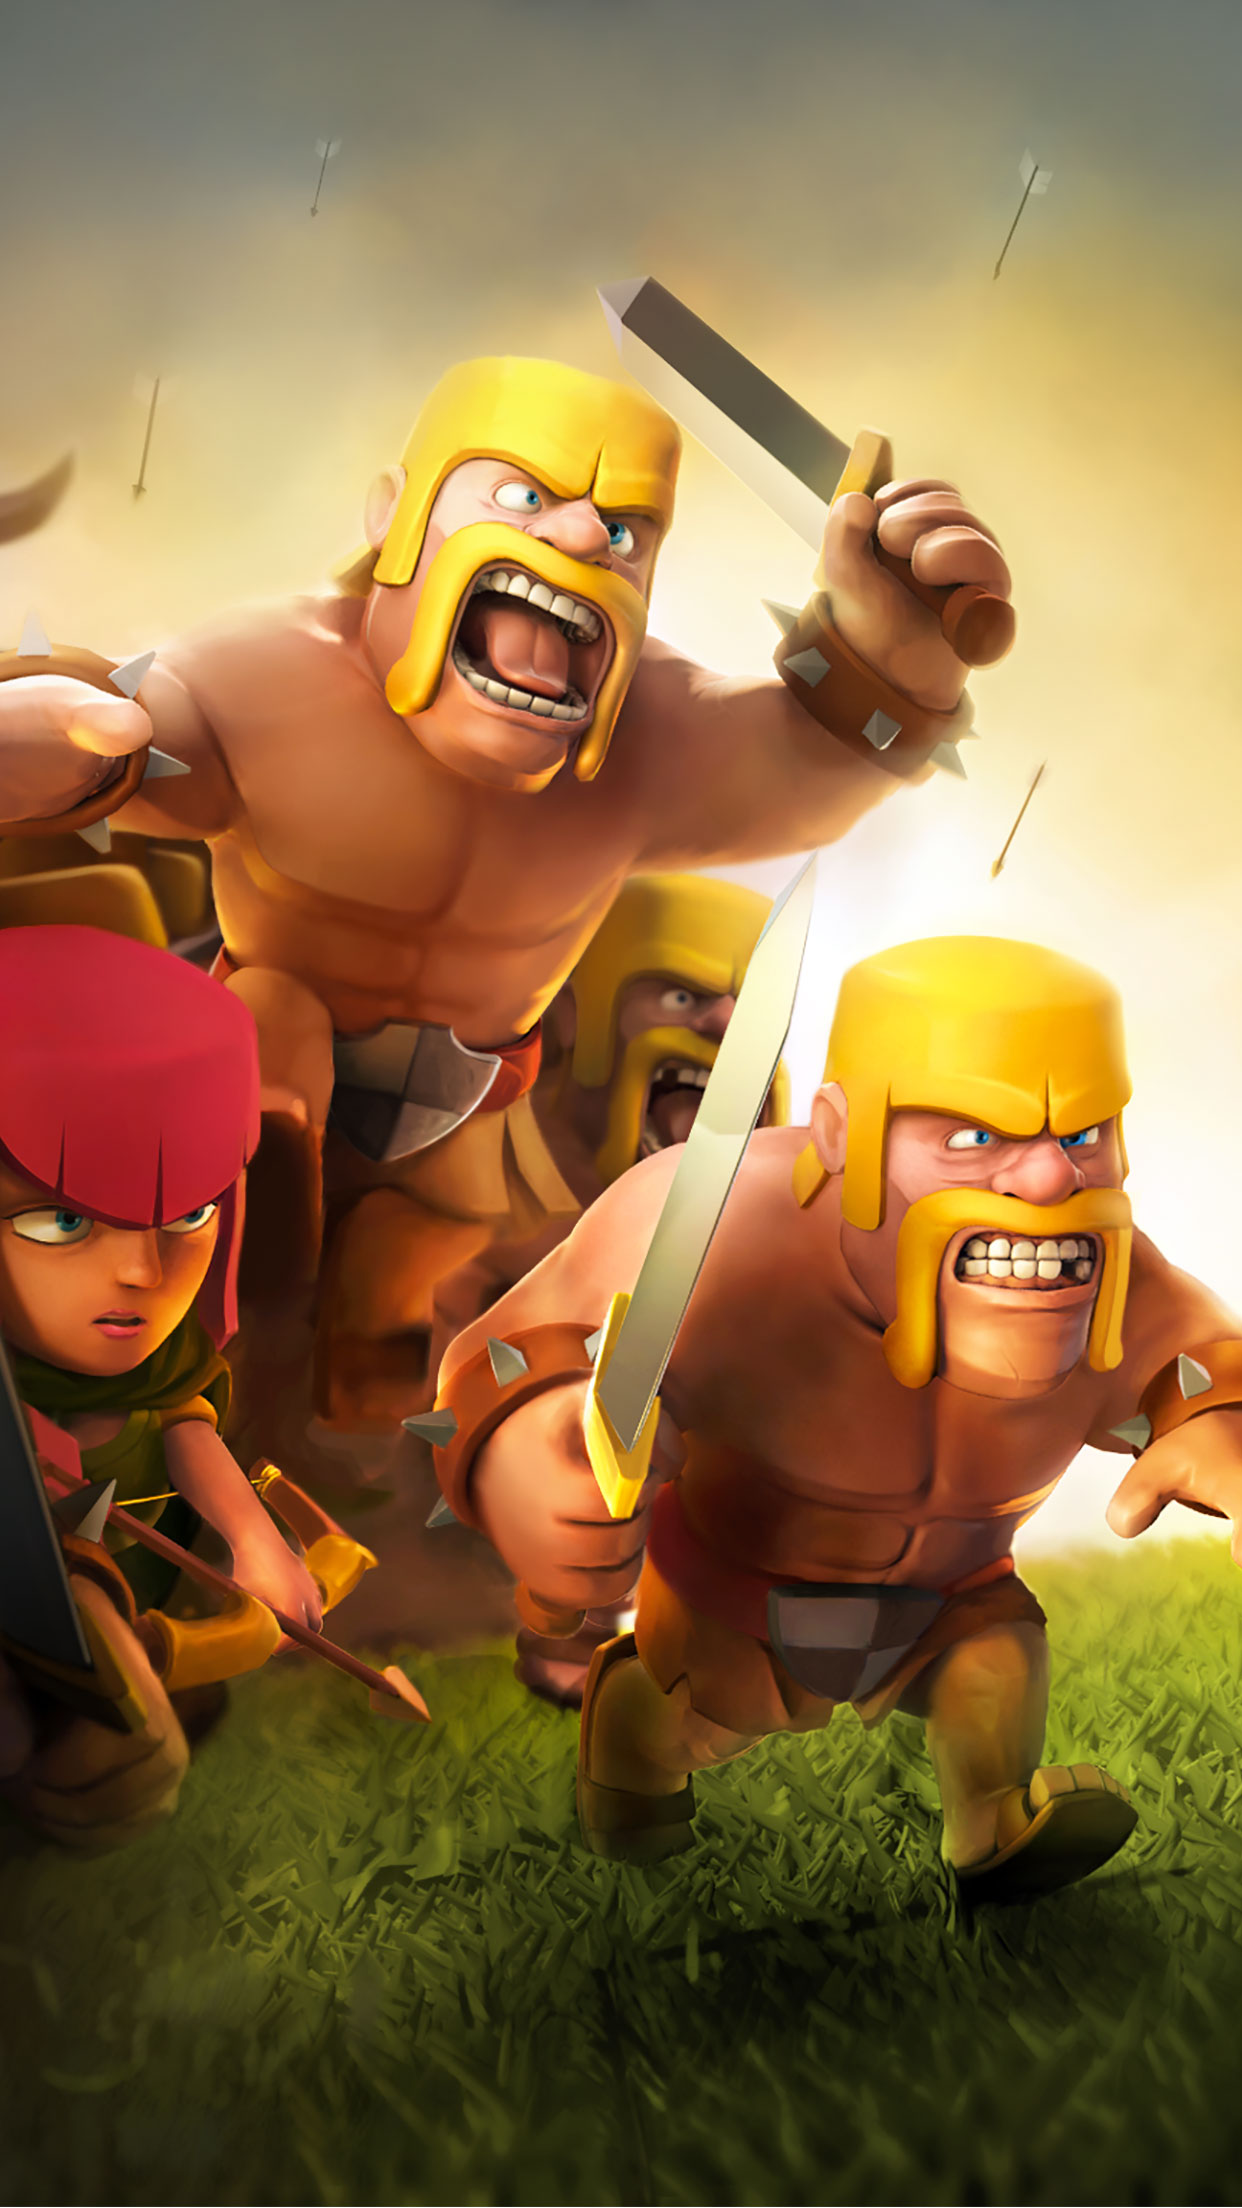 Wallpapers Clash Clans Posted By Ethan Simpson